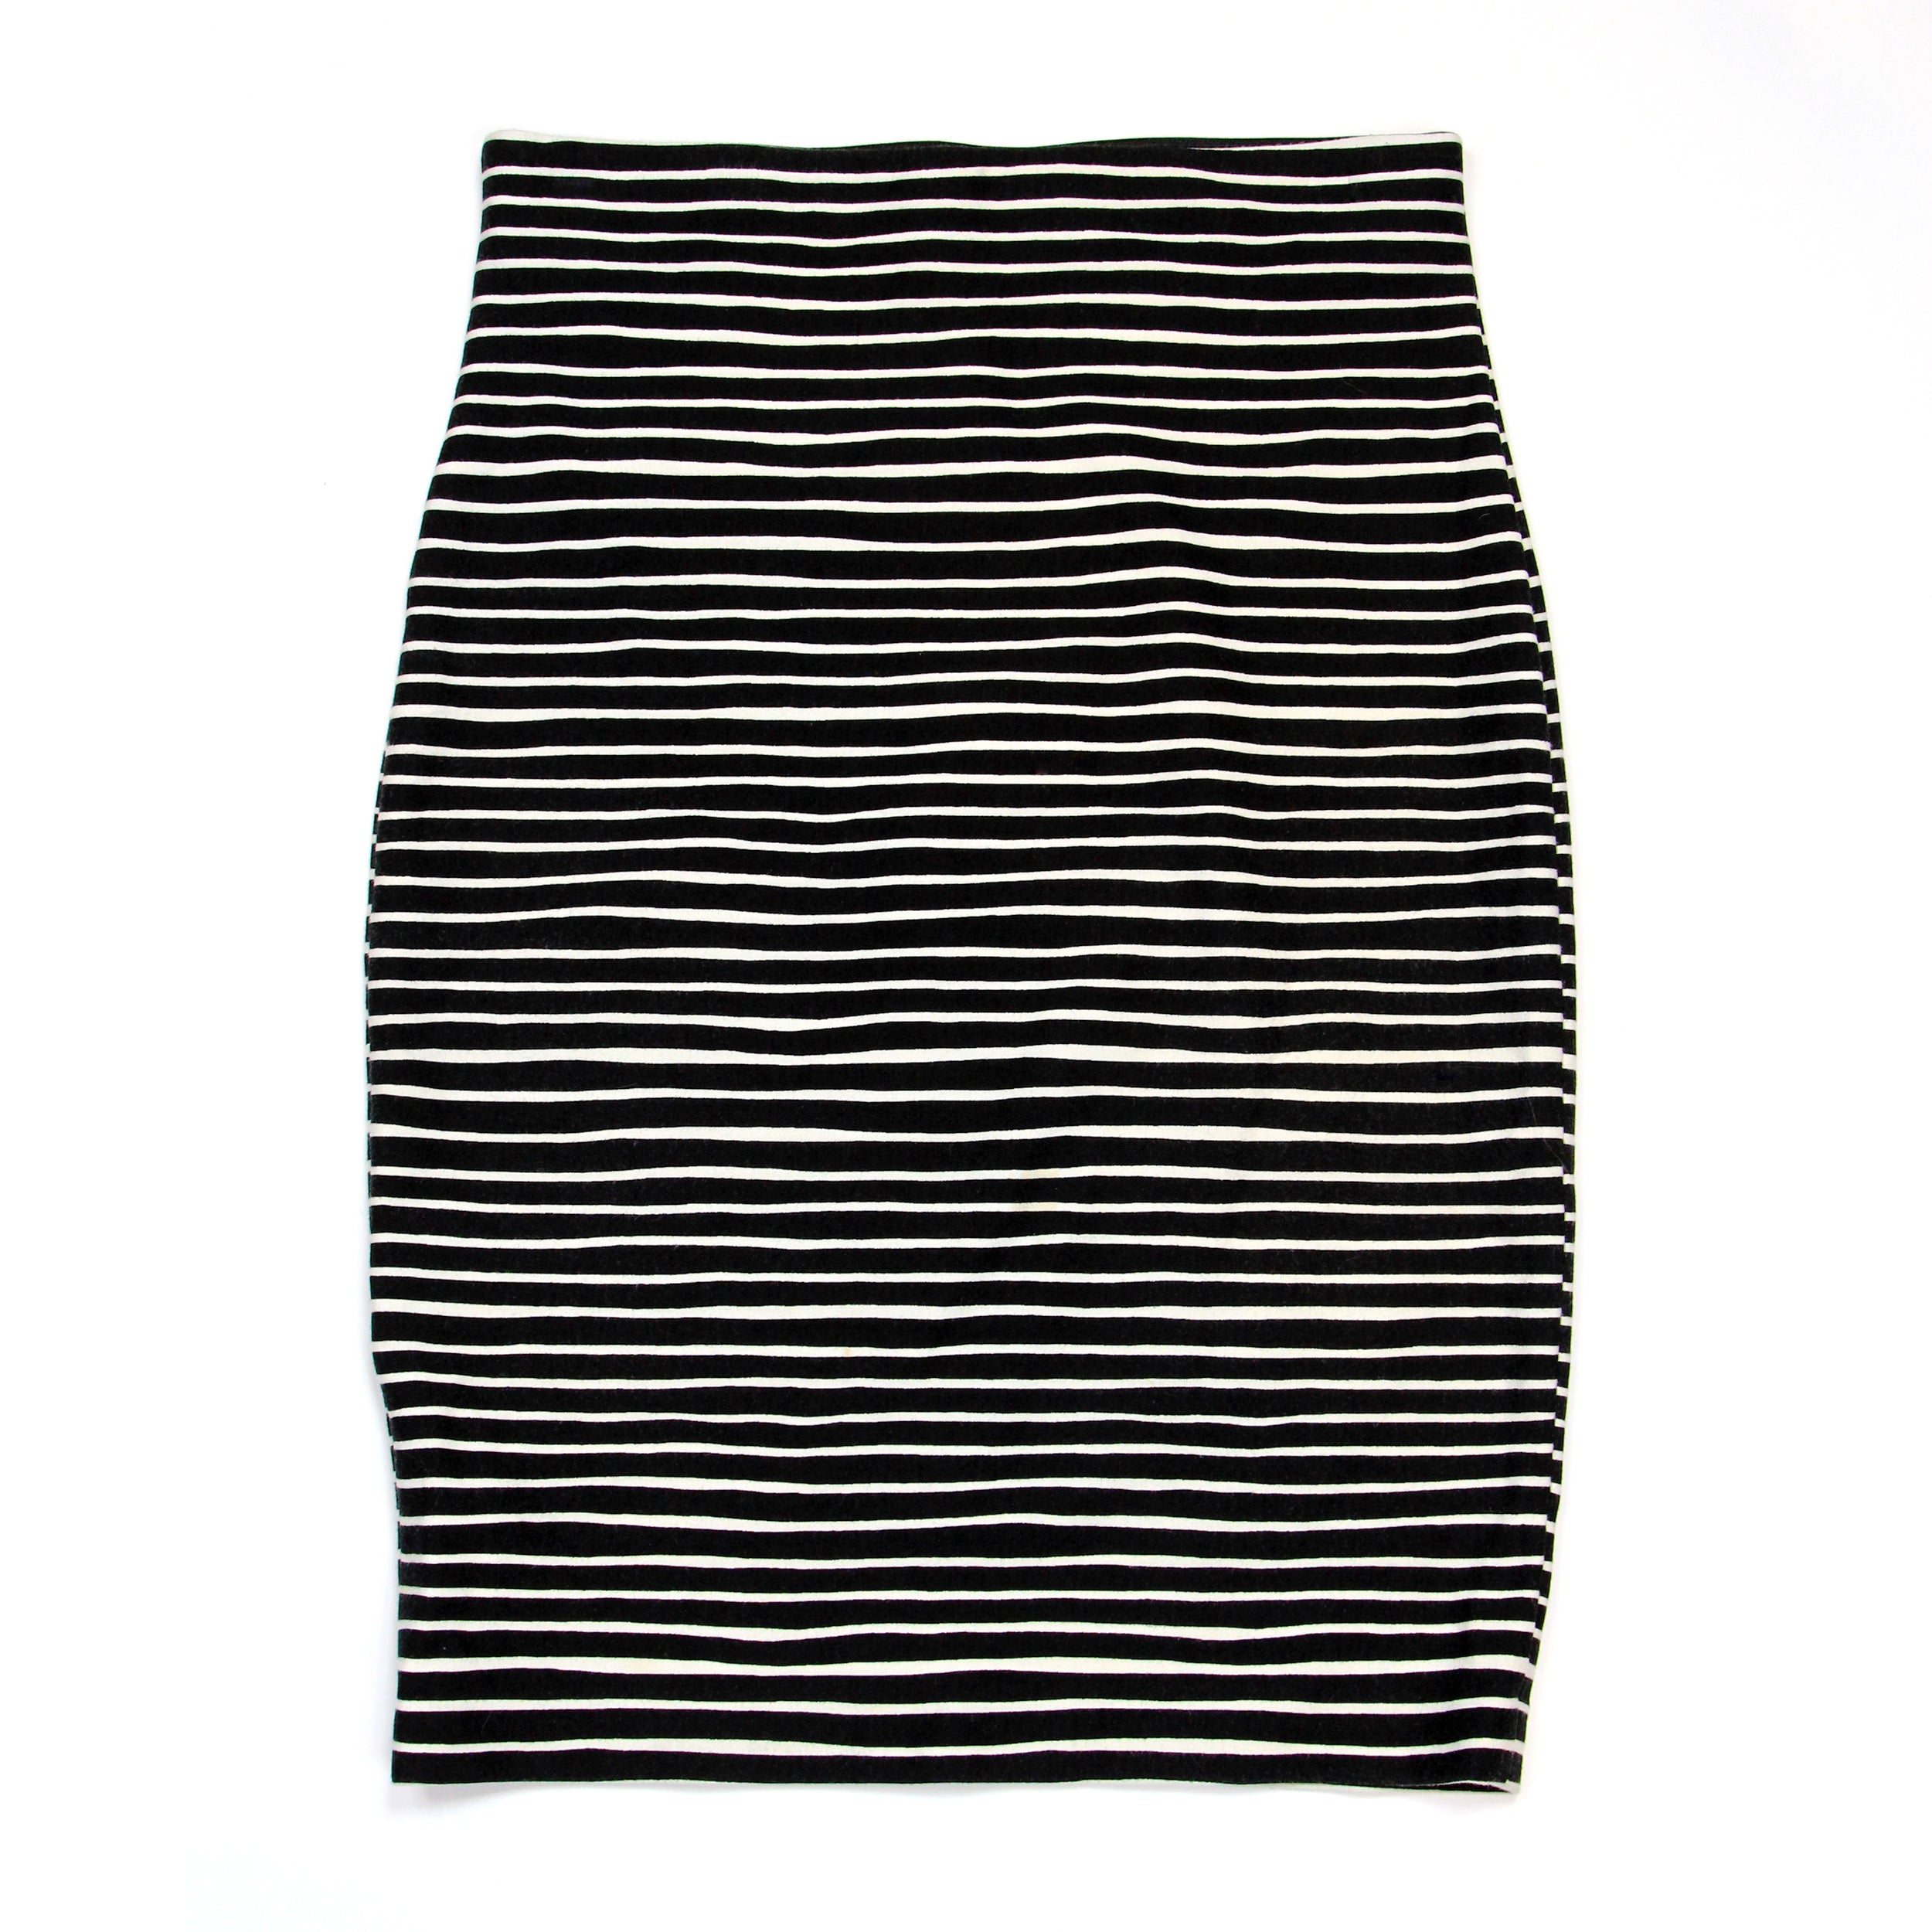 Loft Striped Skirt Size S/P